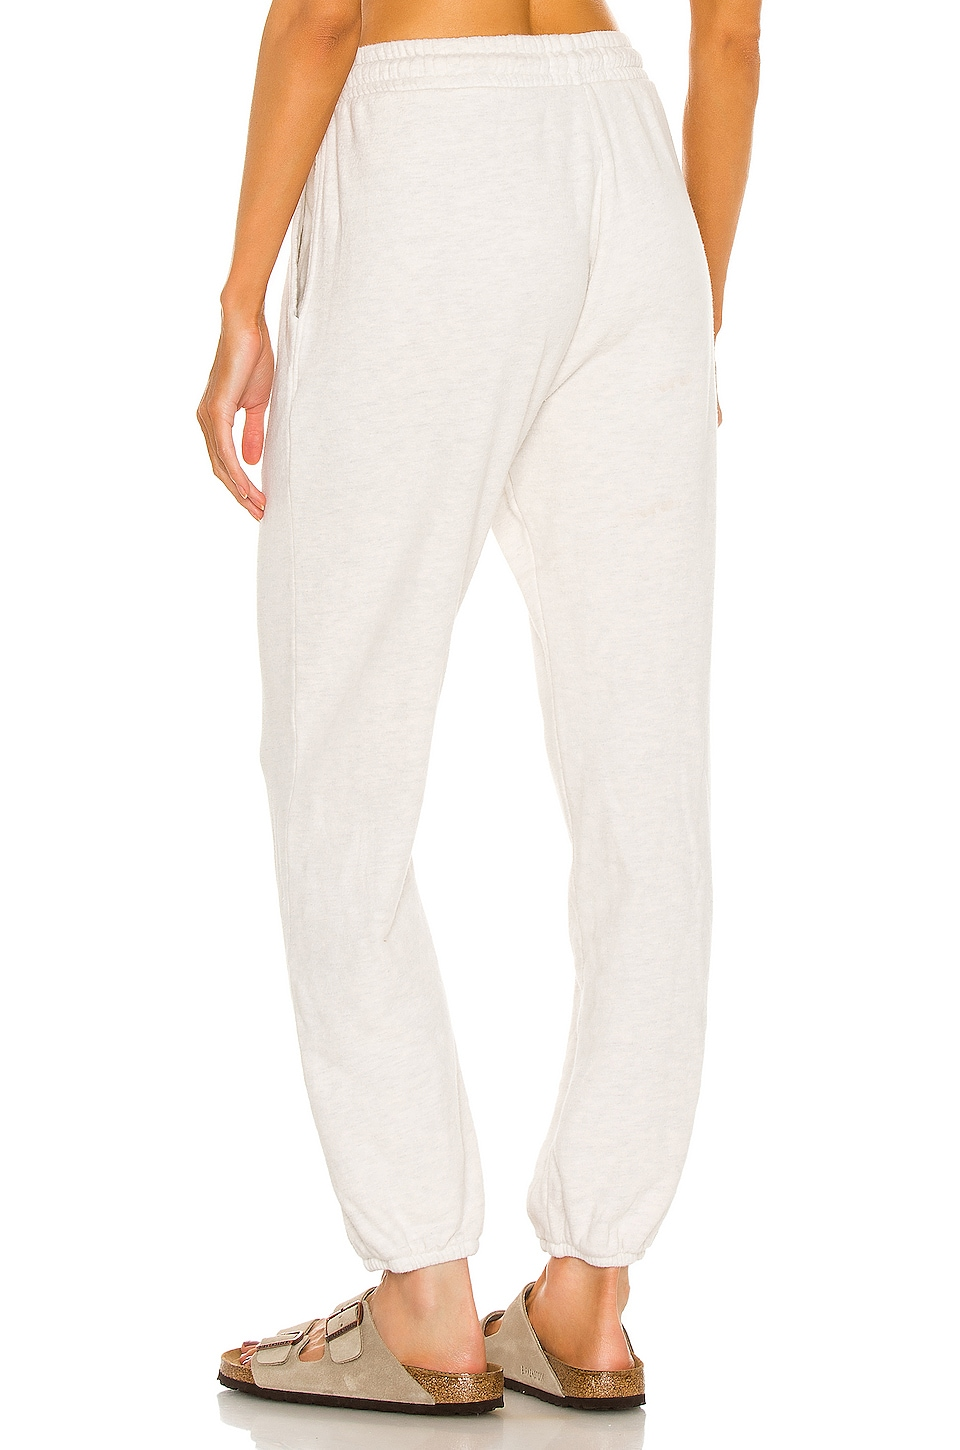 CITIZENS OF HUMANITY Clothing LAILA CASUAL FLEECE PANT